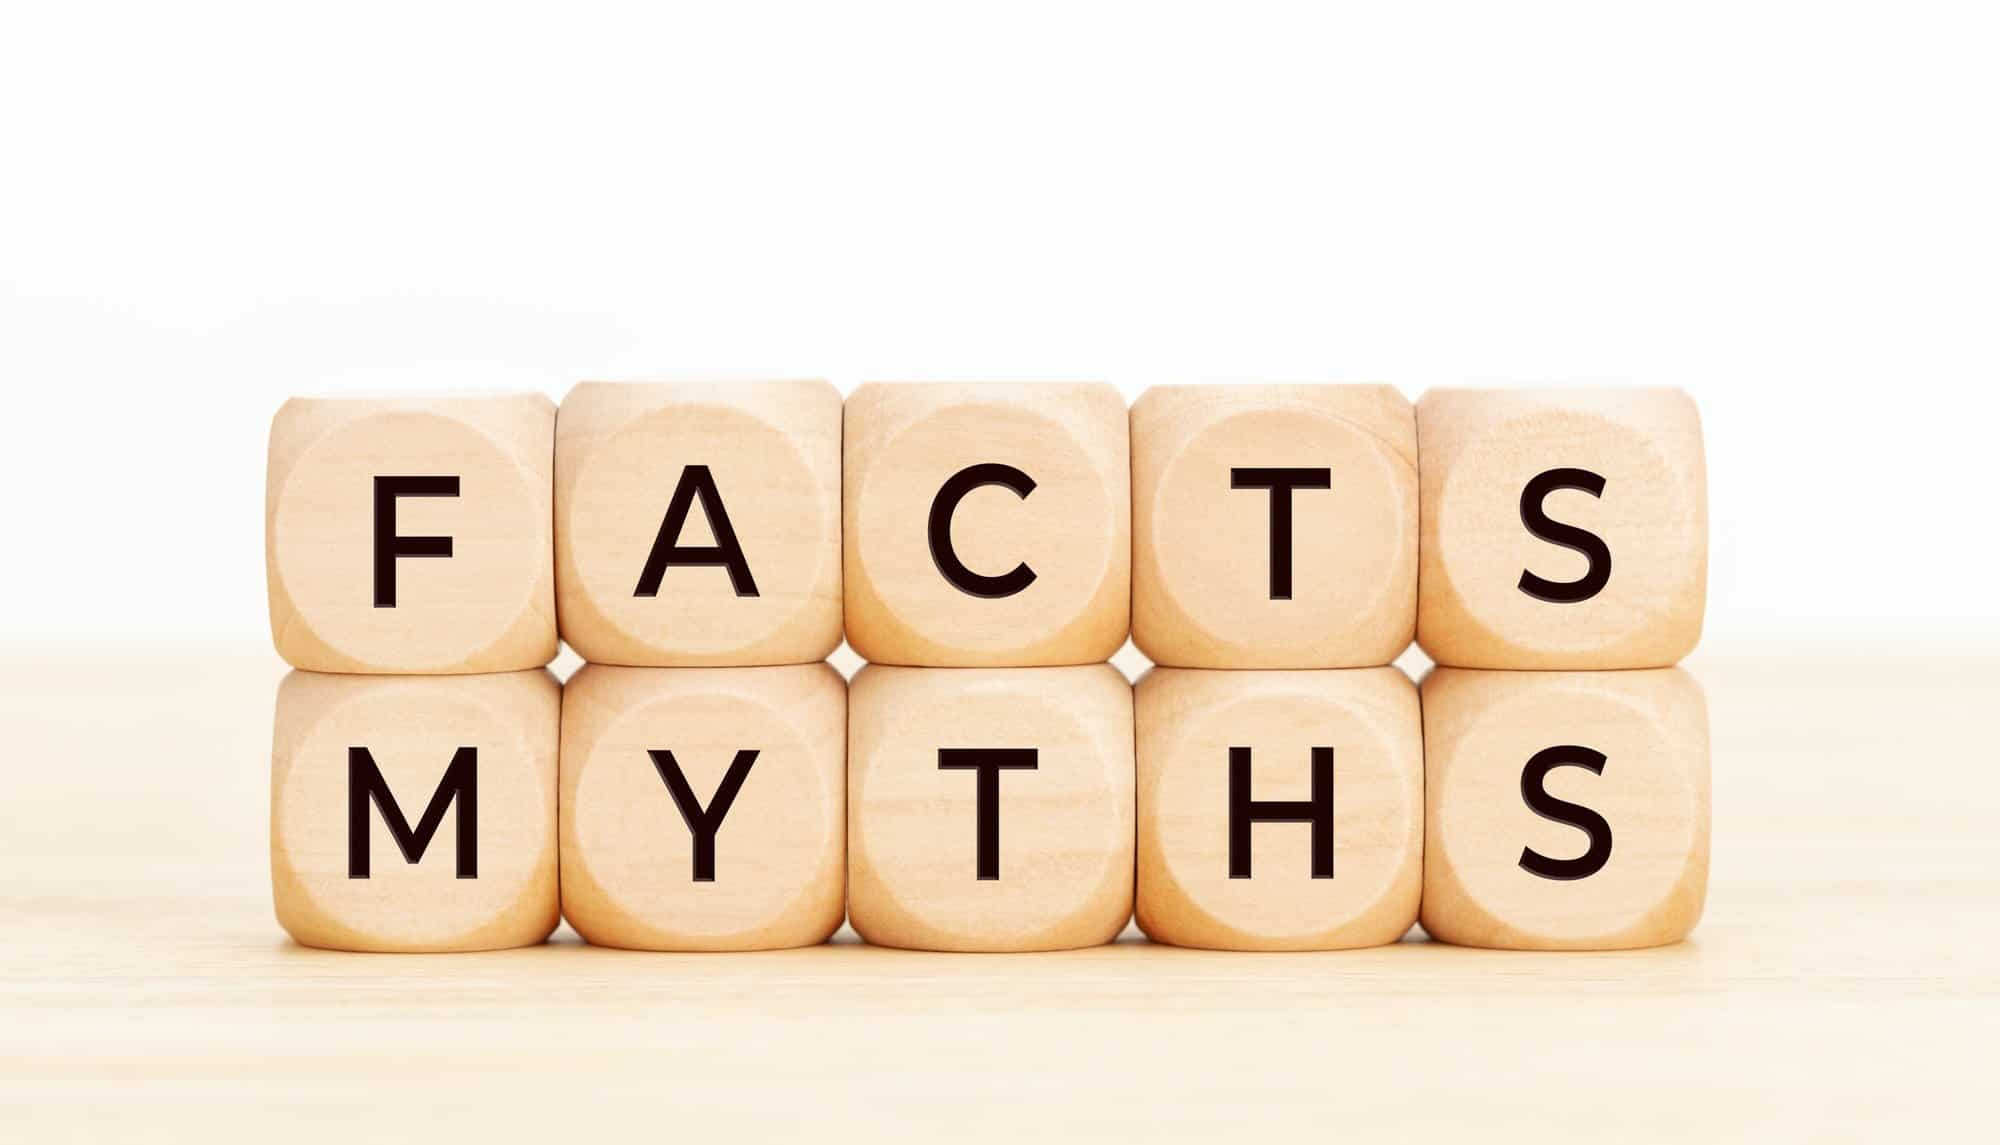 Facts Myths concept